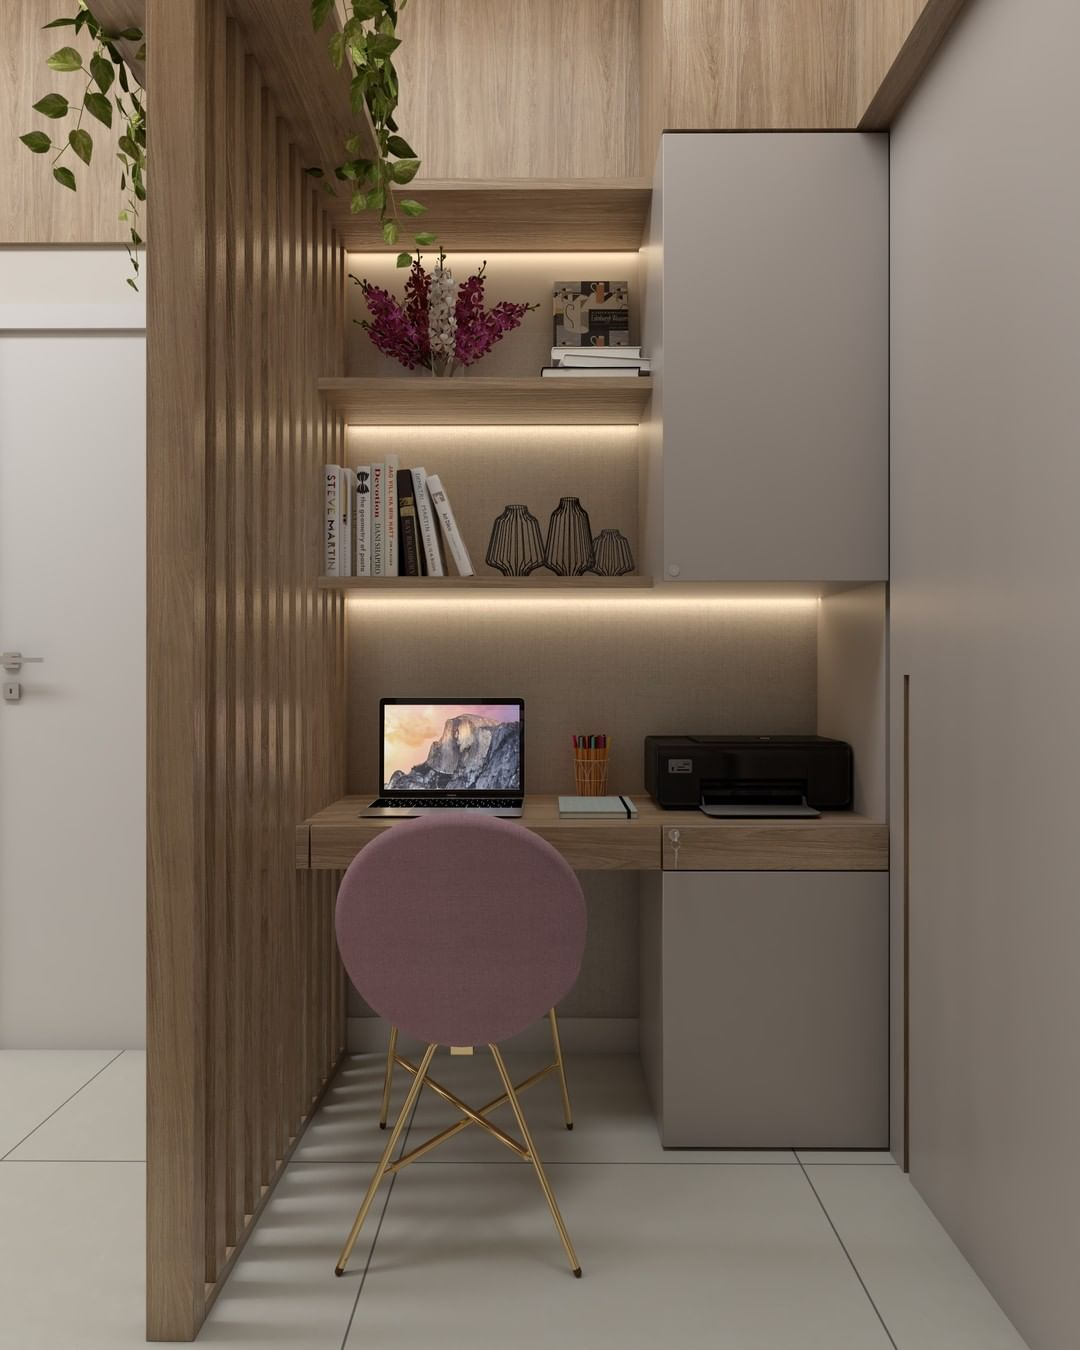 Cloffice references and ideas